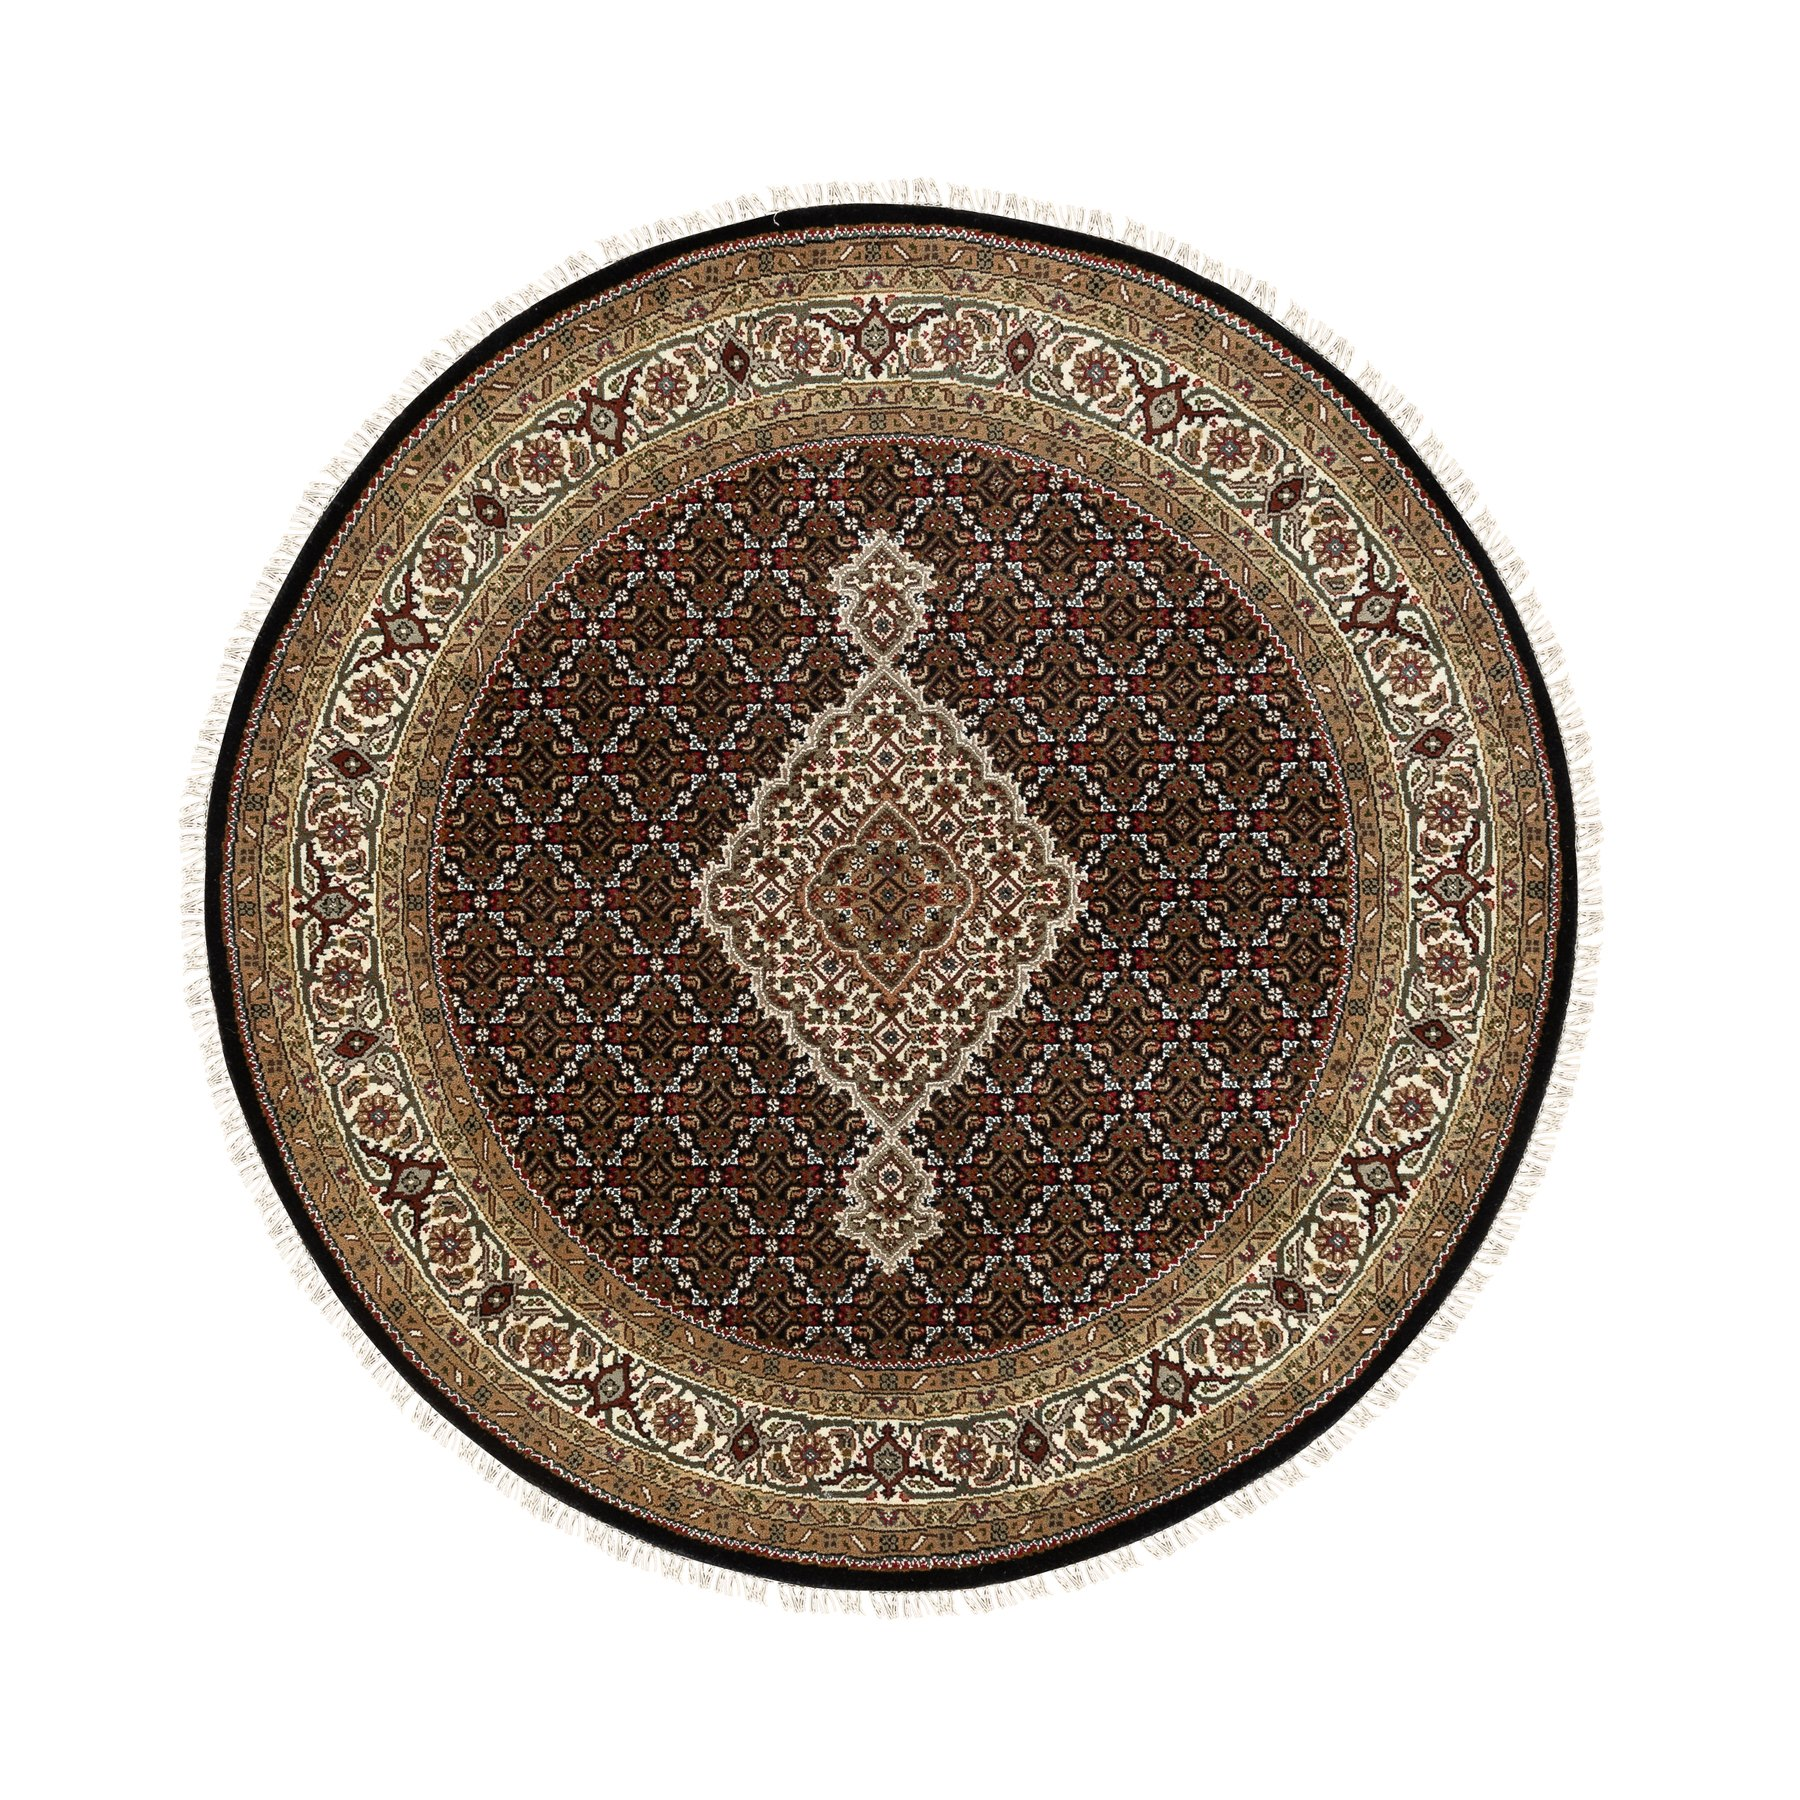 Pirniakan Collection Hand Knotted Black Rug No: 1117376